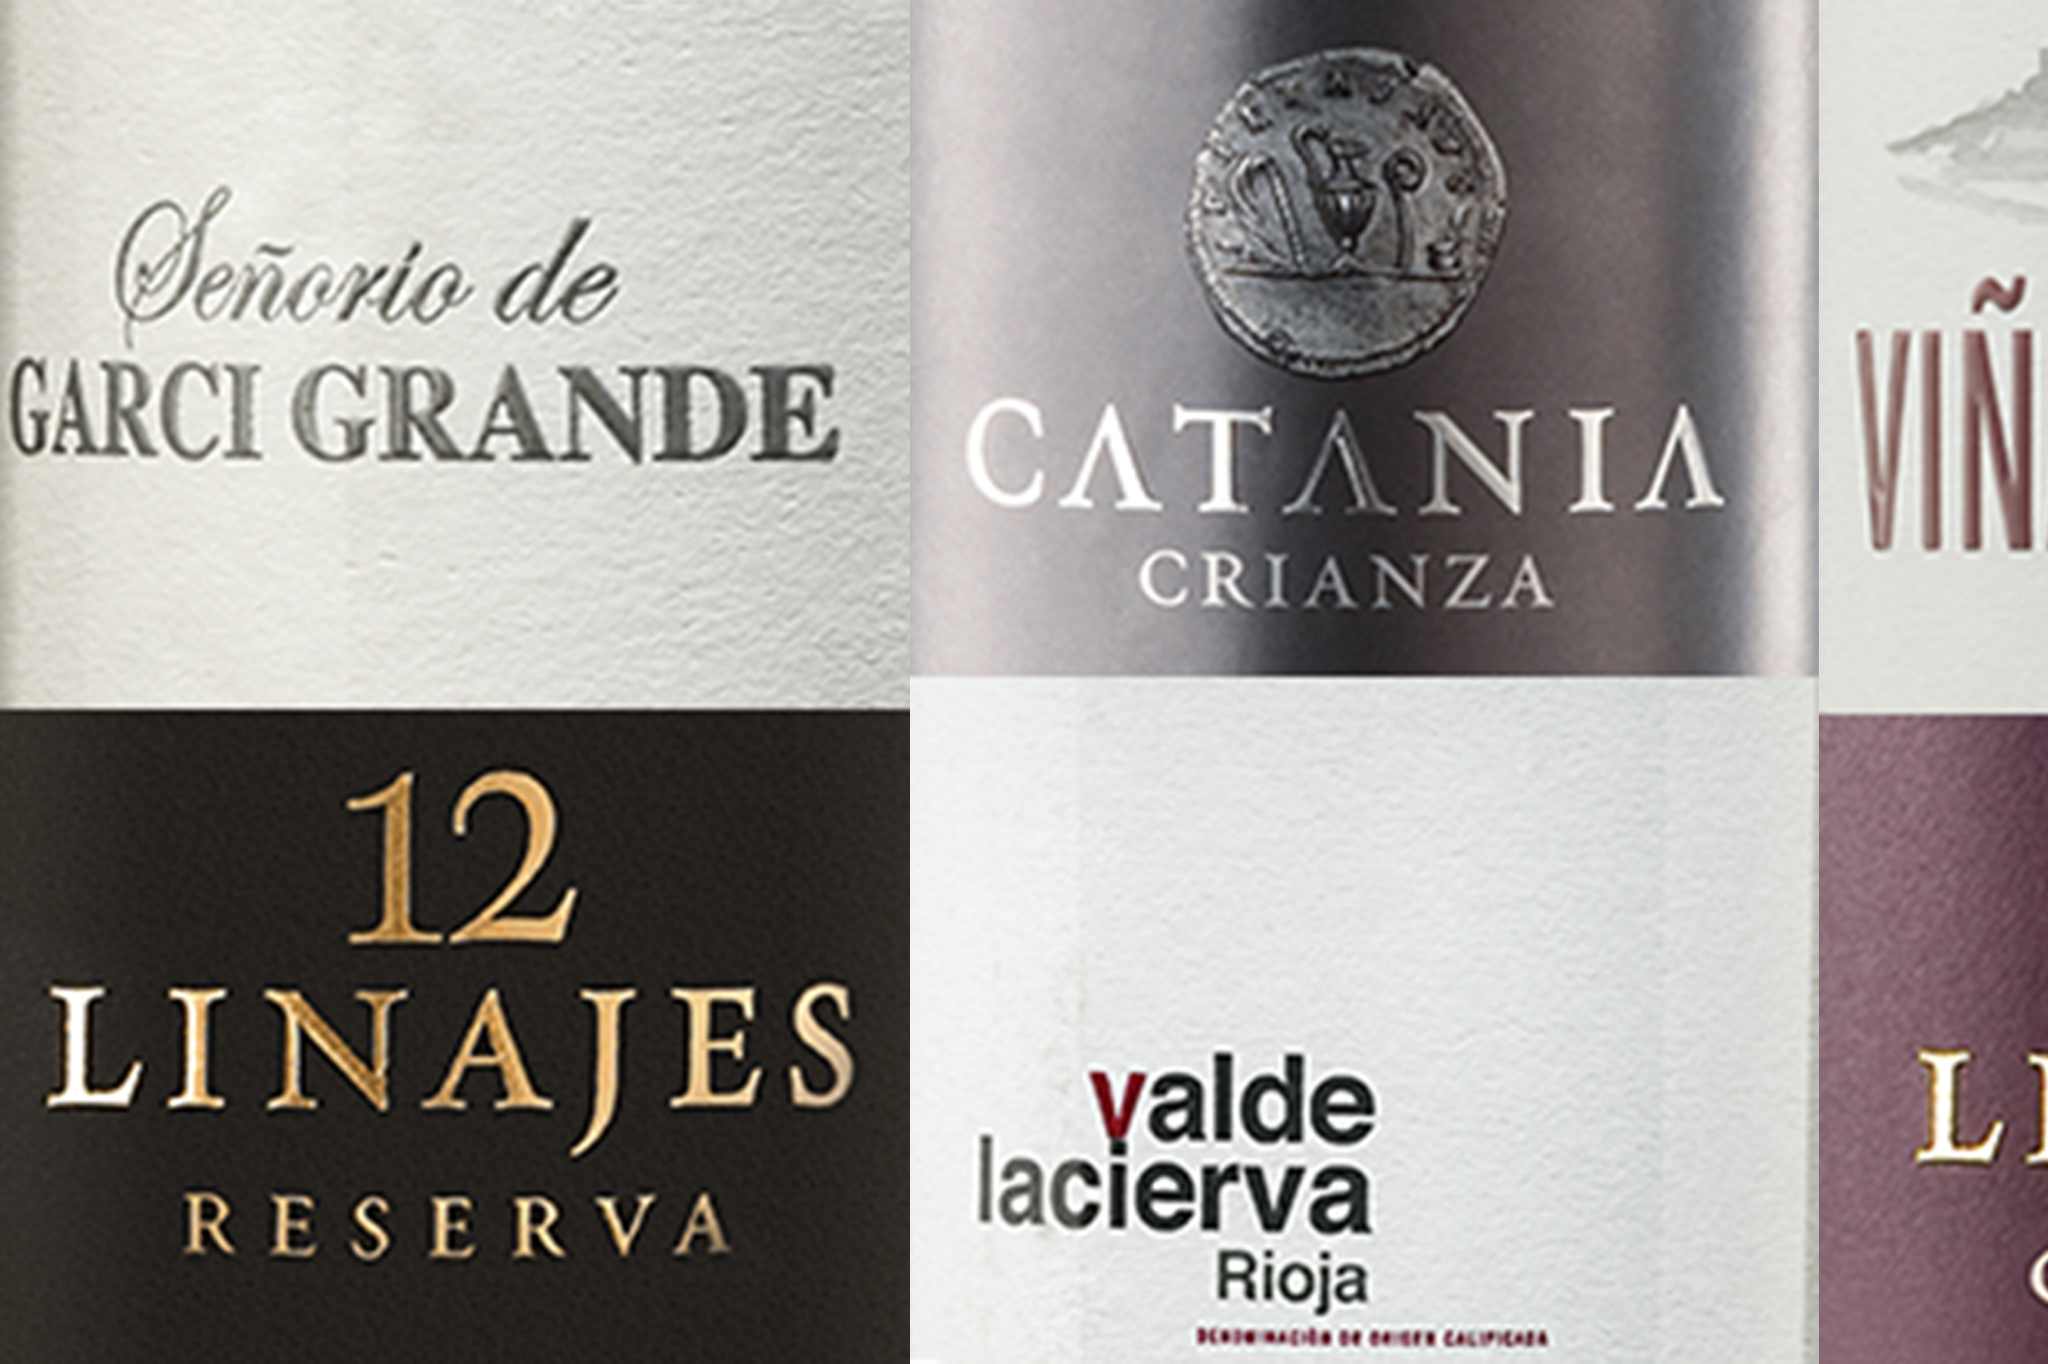 WAWWJ 2015 RANKING: Hispanobodegas and its wines among the first 100 in a worldwide ranking